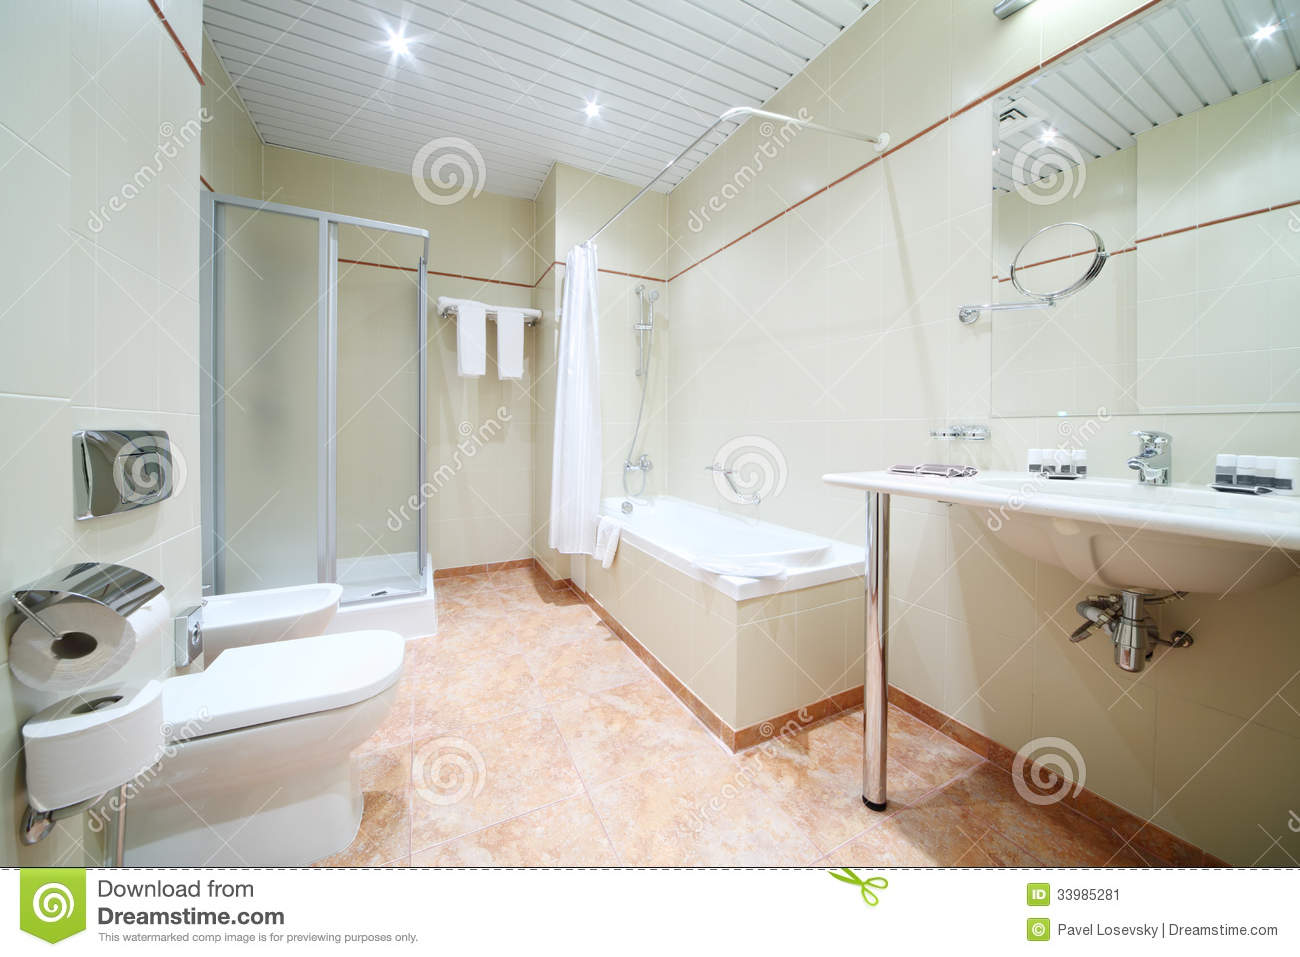 hd wallpapers yes badezimmer ag3d3dwall.cf, Badezimmer ideen